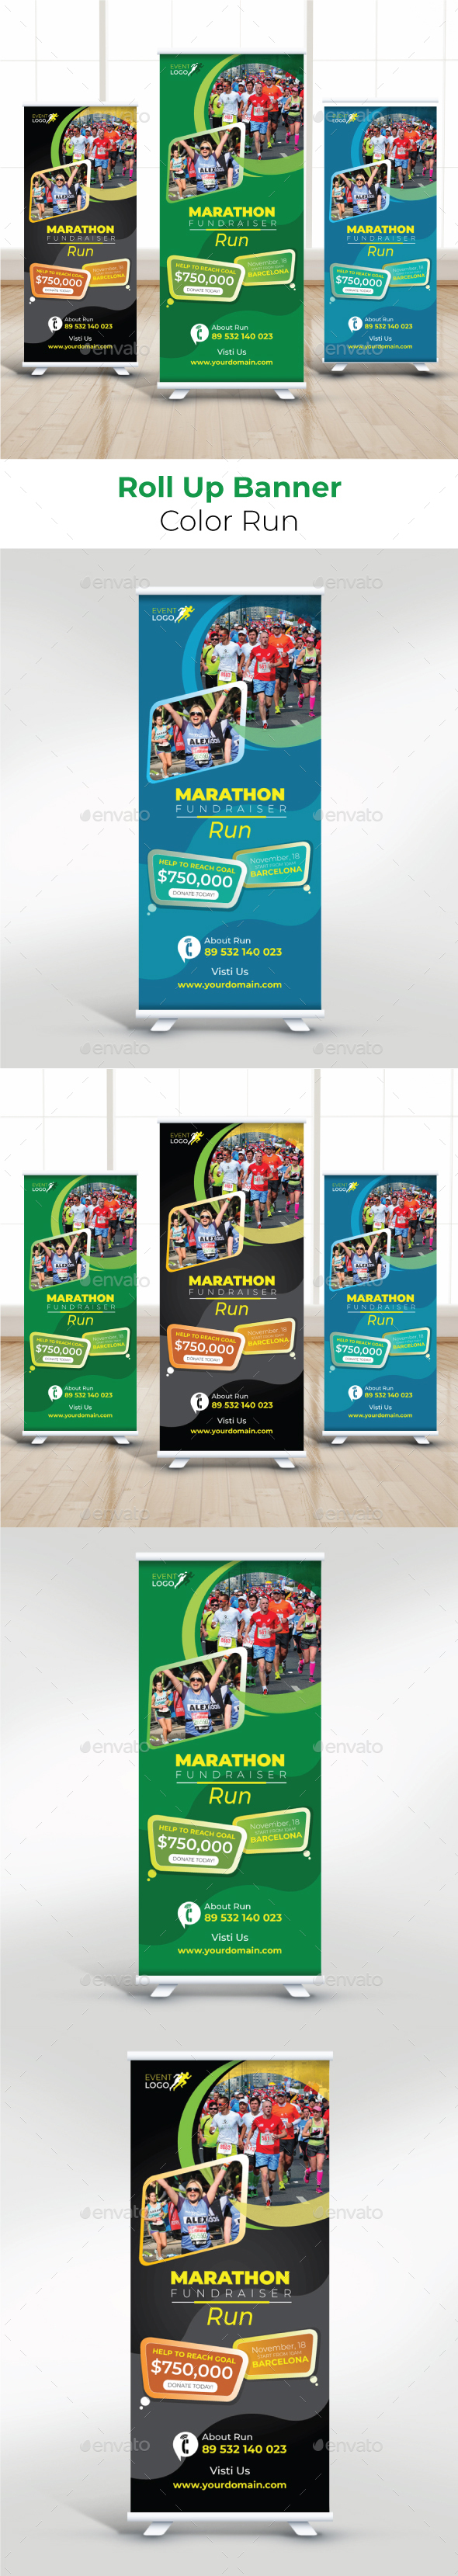 Color Run Roll Up Banner - Signage Print Templates